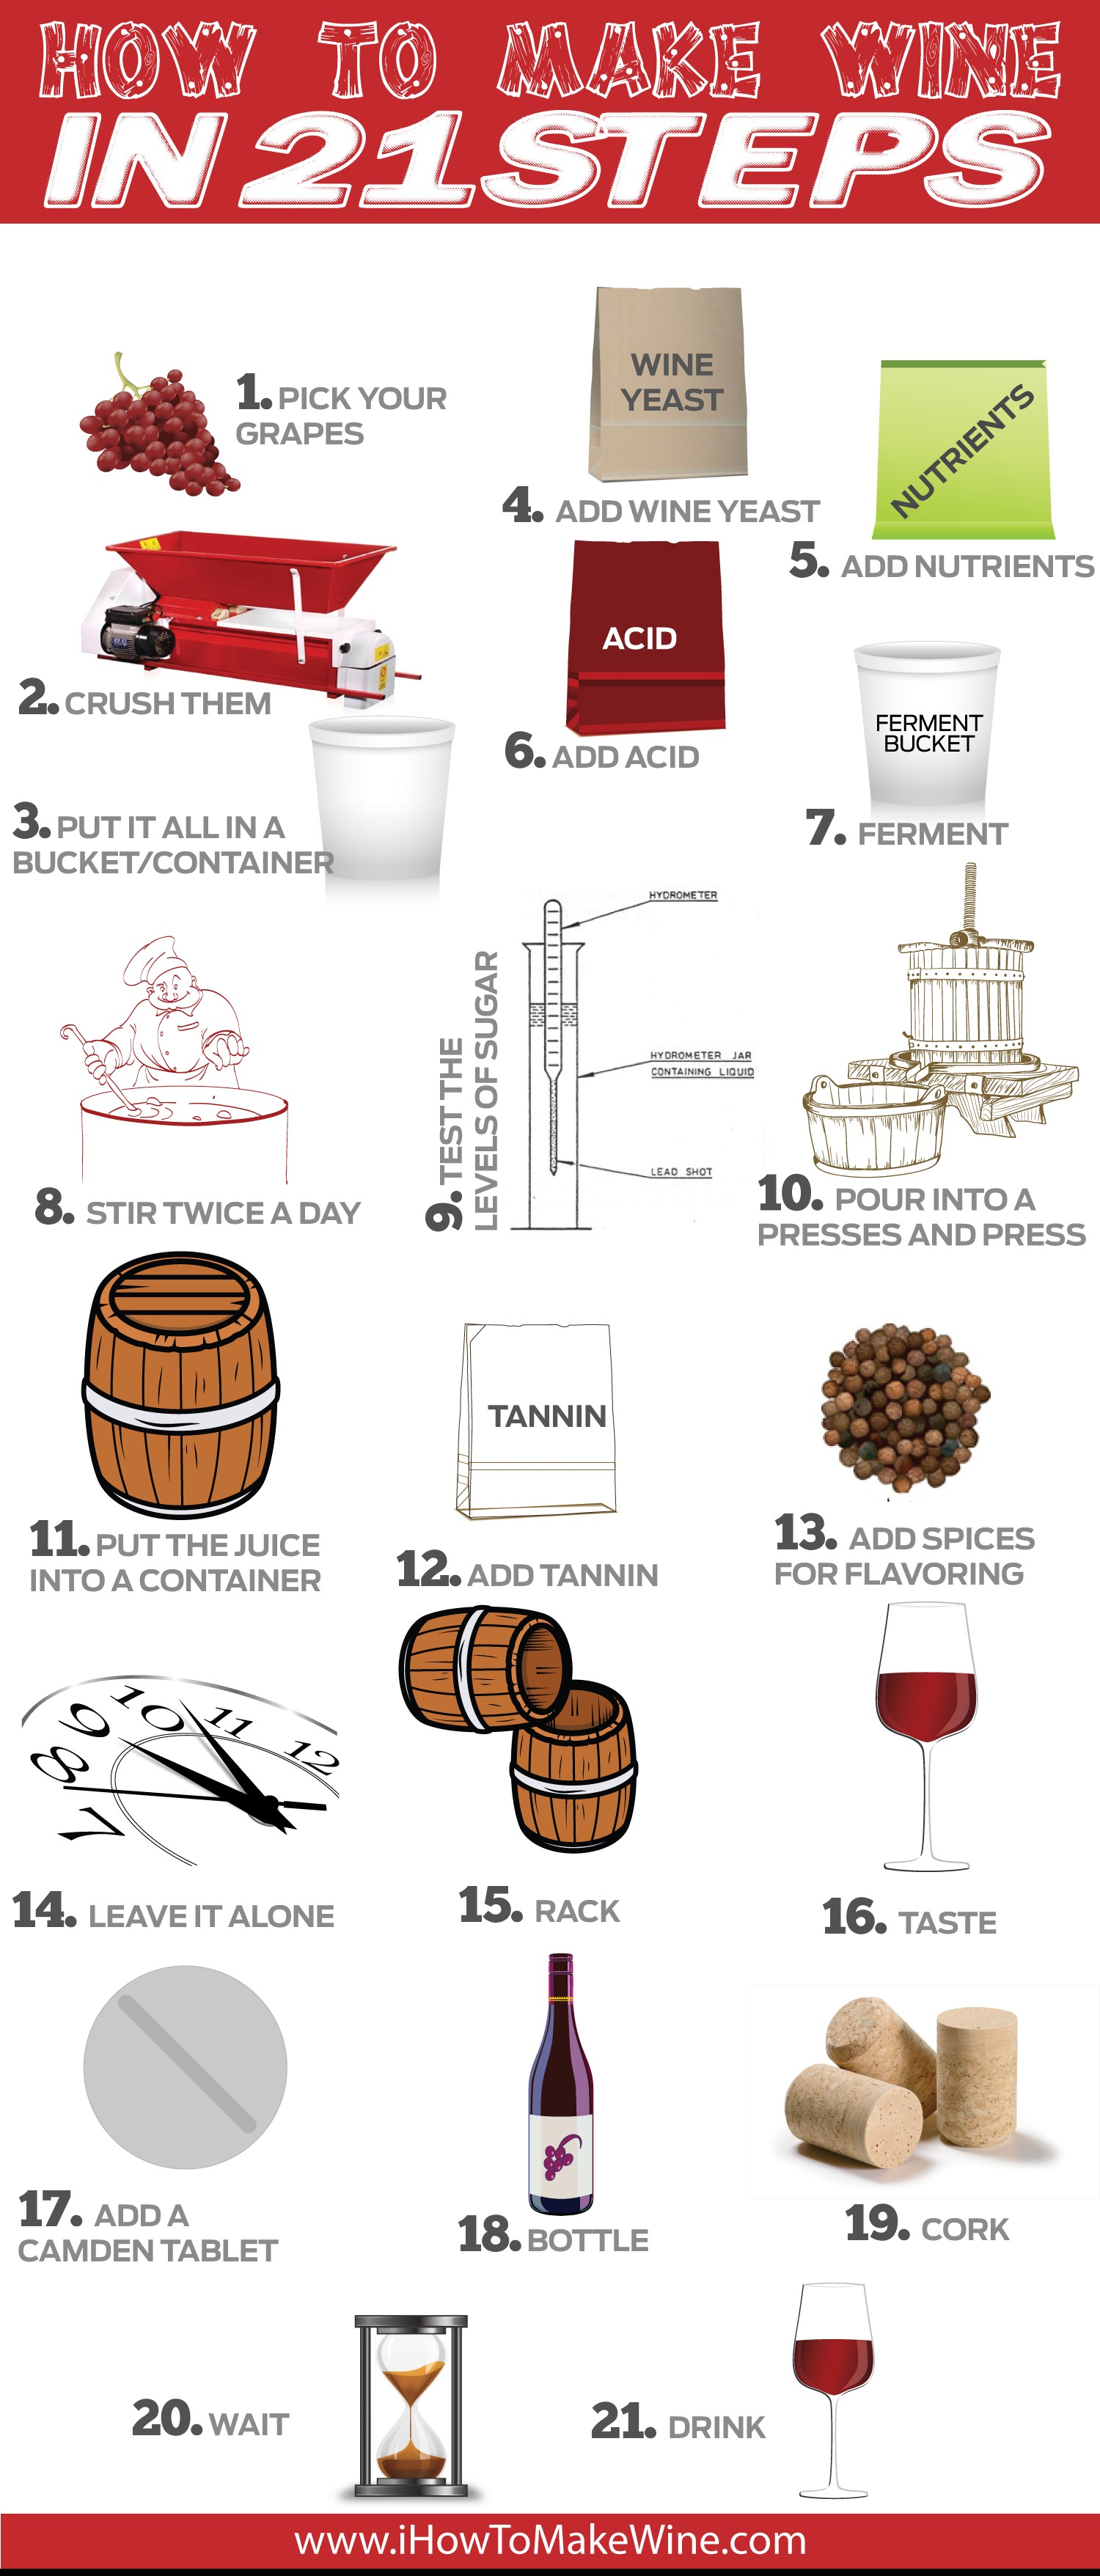 how-to-make-wine-in-21-steps_538a3fe1eaa89_w1500